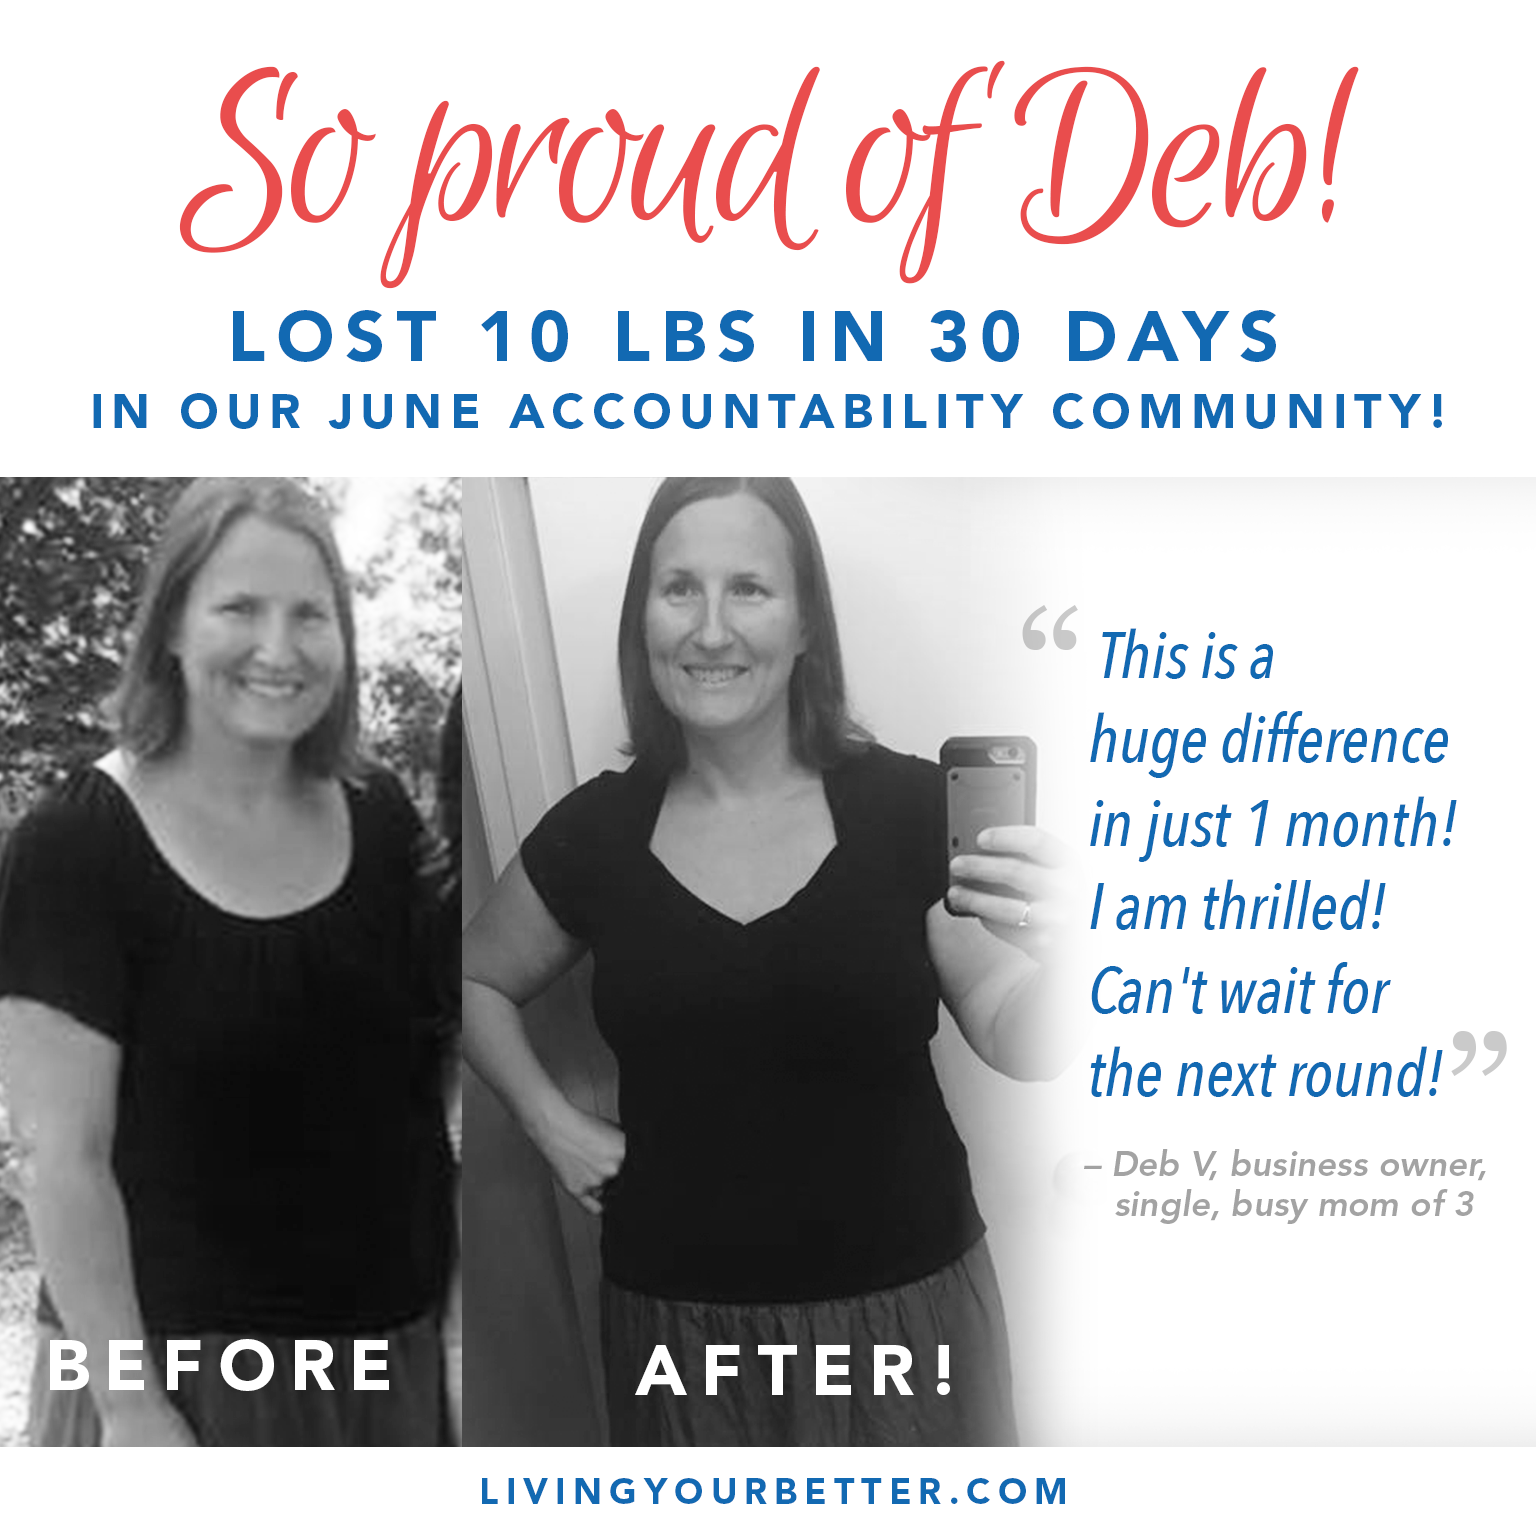 She lost 10 lbs in 30 days!